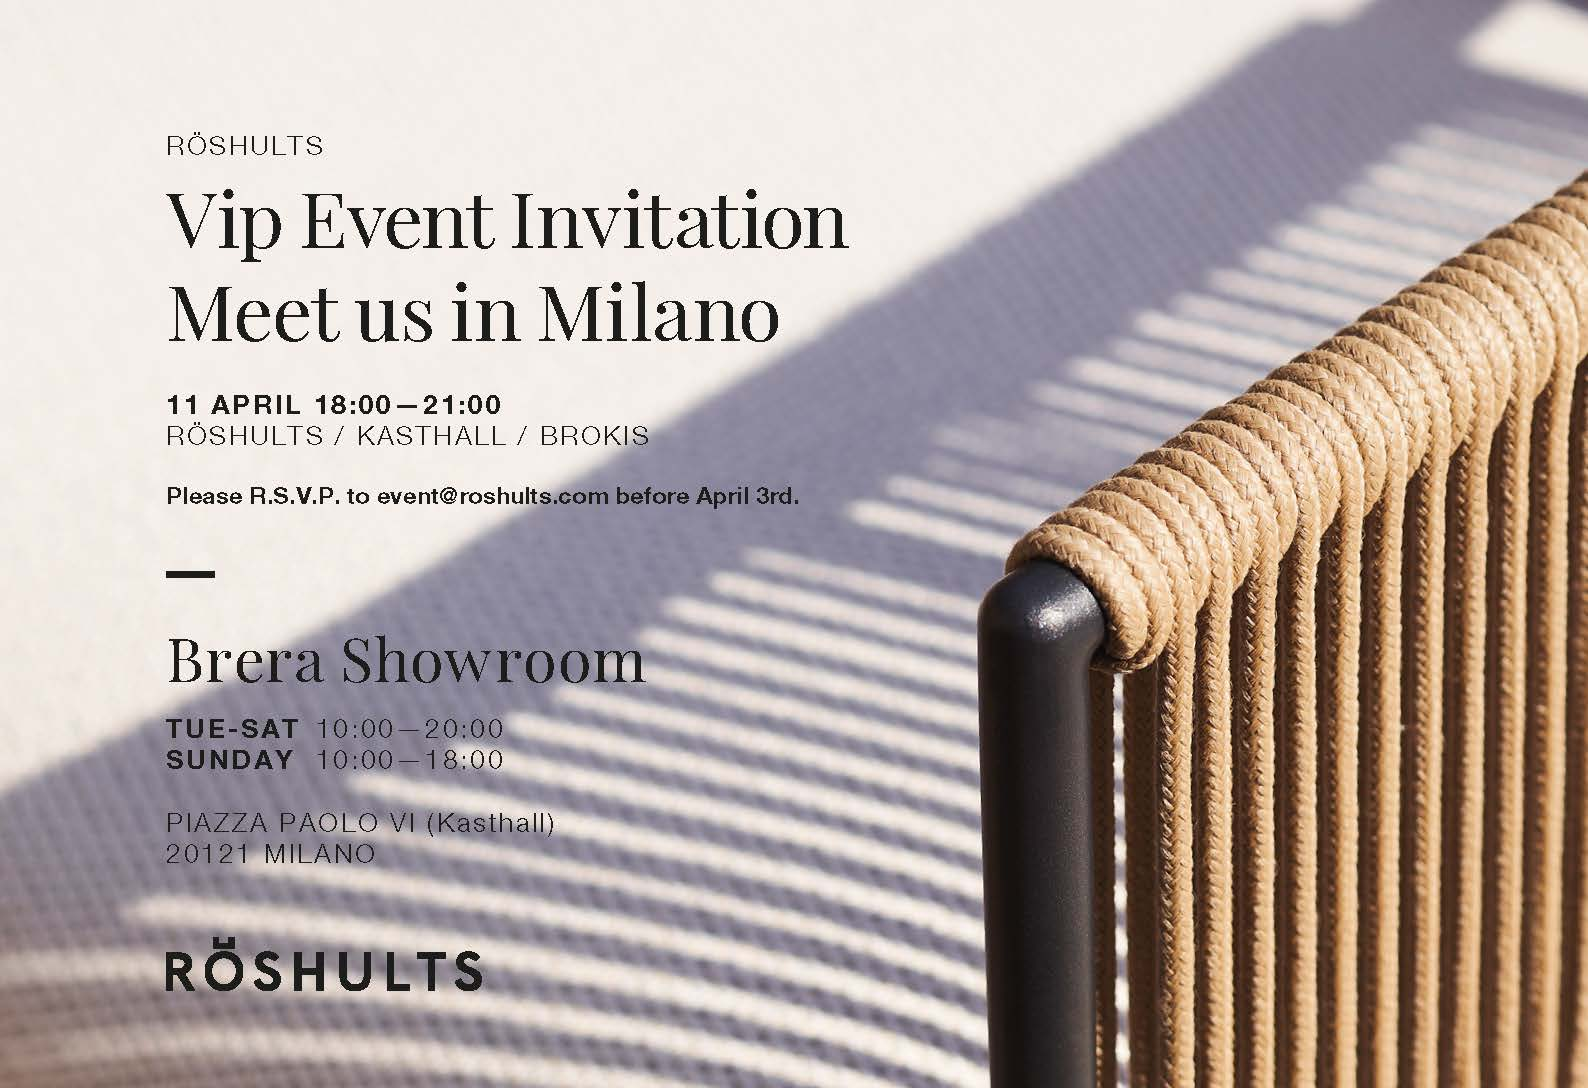 Roshults_InvitationVIP_Milan2019jpg